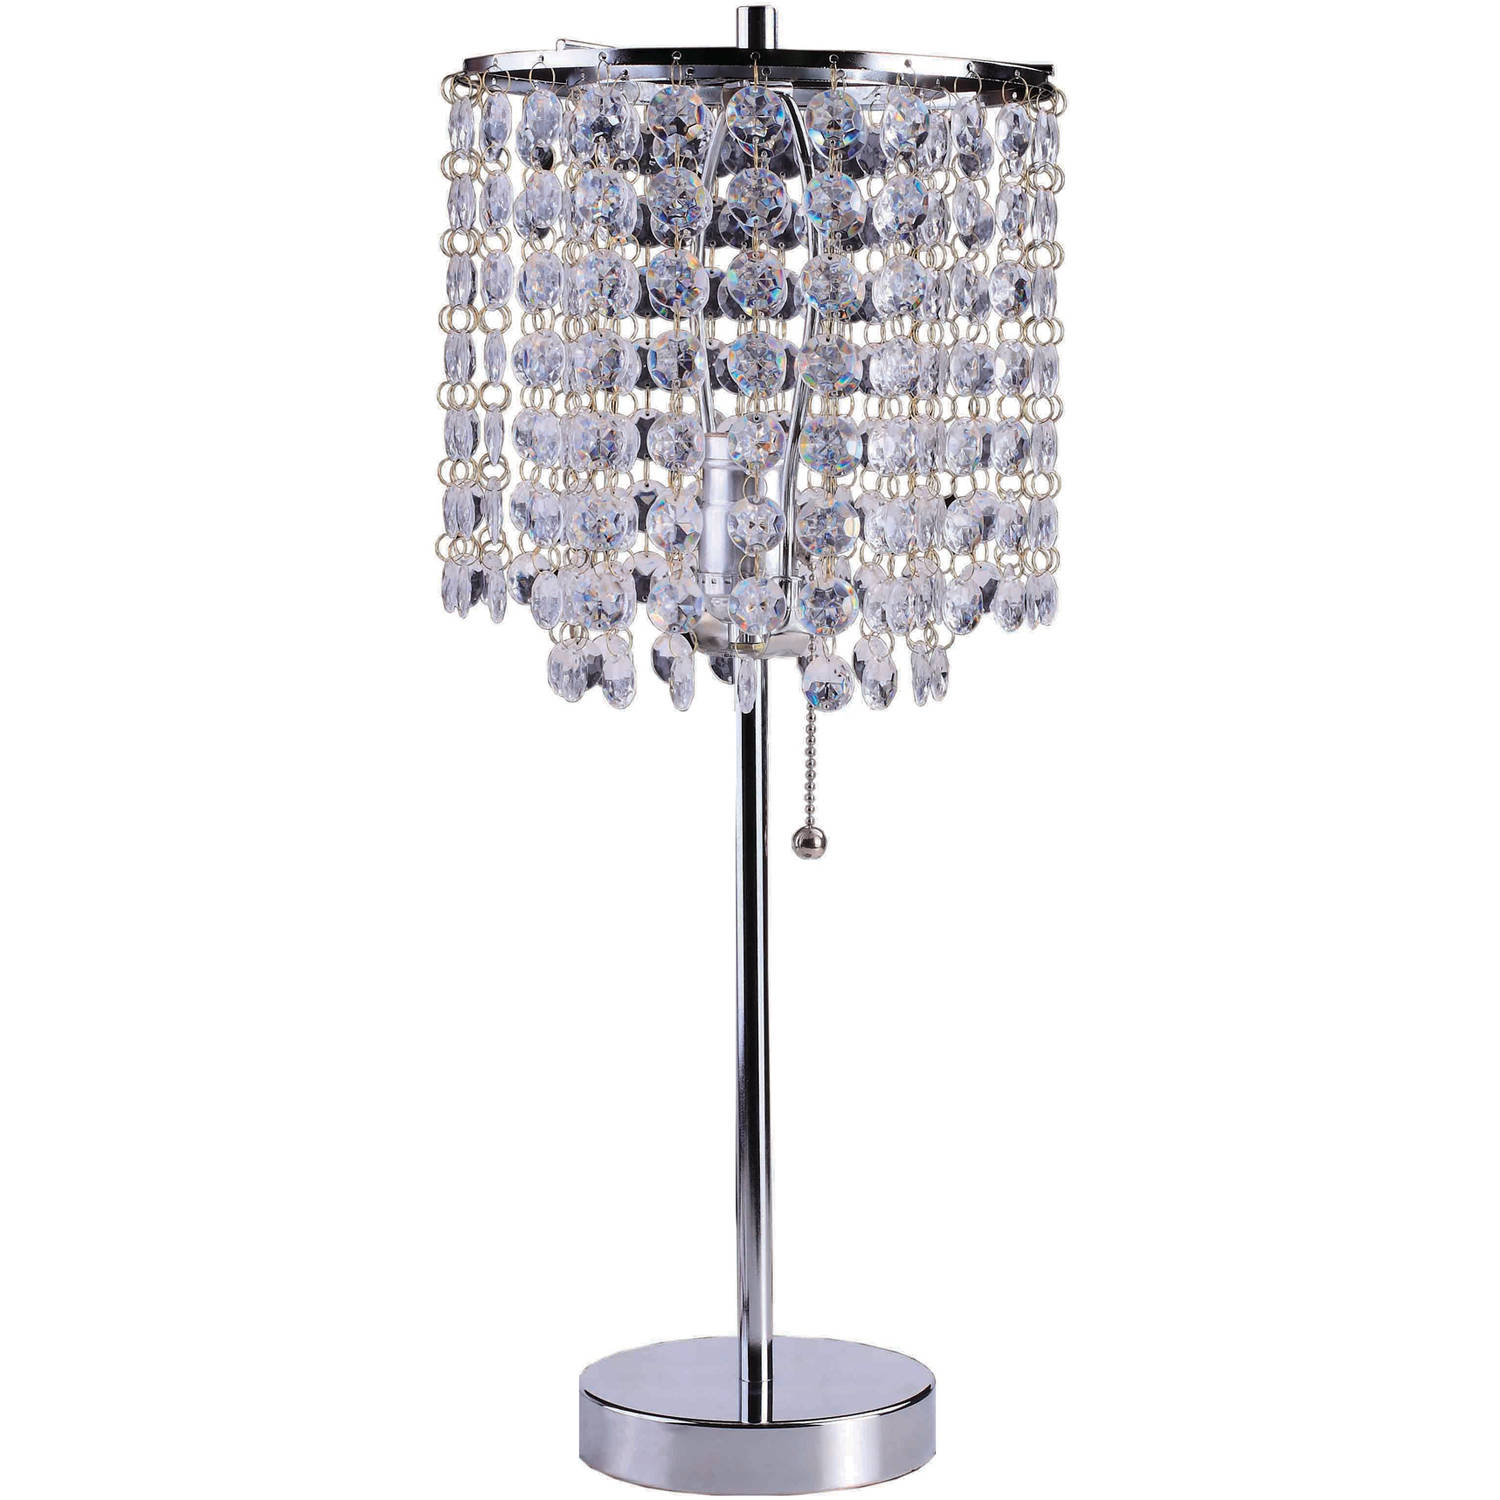 "20.25"" Deco Glam Table Lamp by ORE INTERNATIONAL INC"